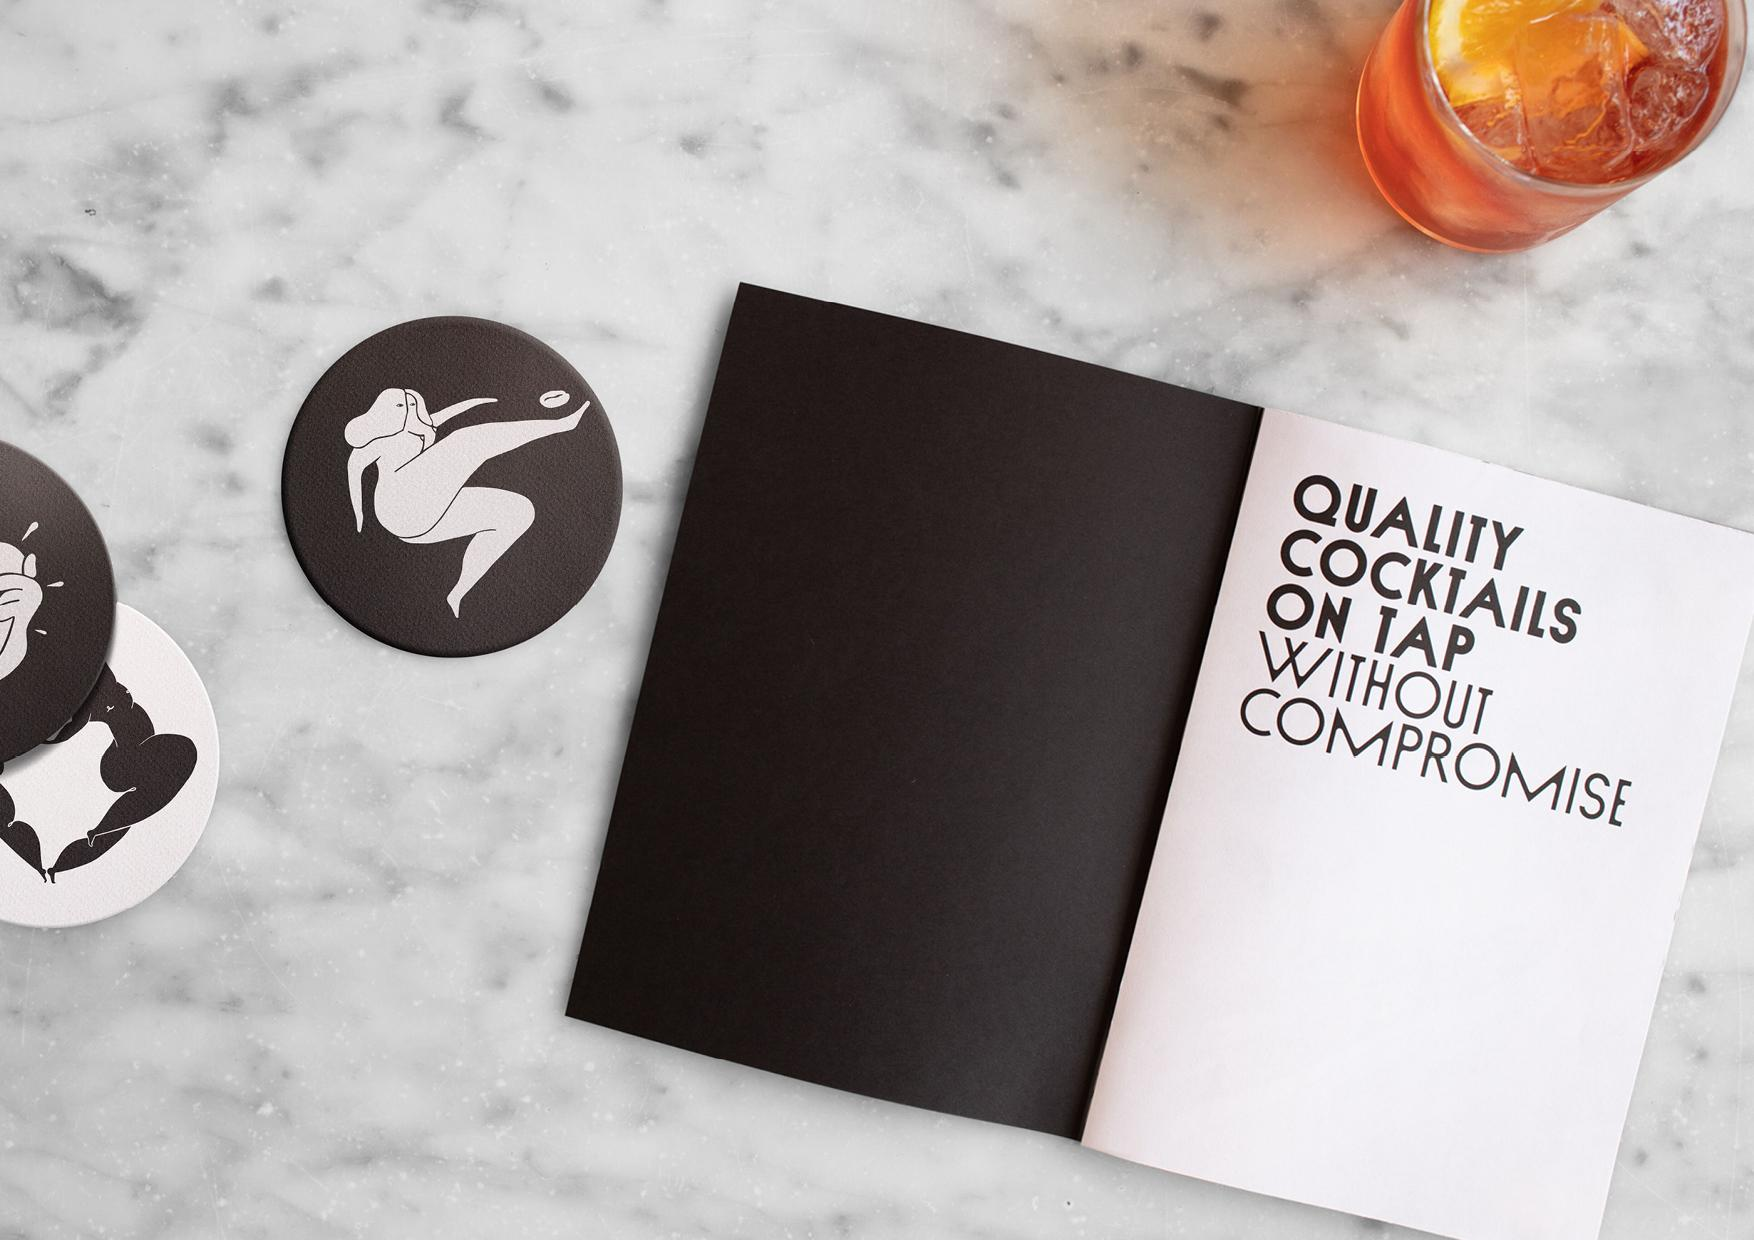 Black Lines: Black Lines Shakes Up the Cocktail Industry With New Brand Identity By & SMITH